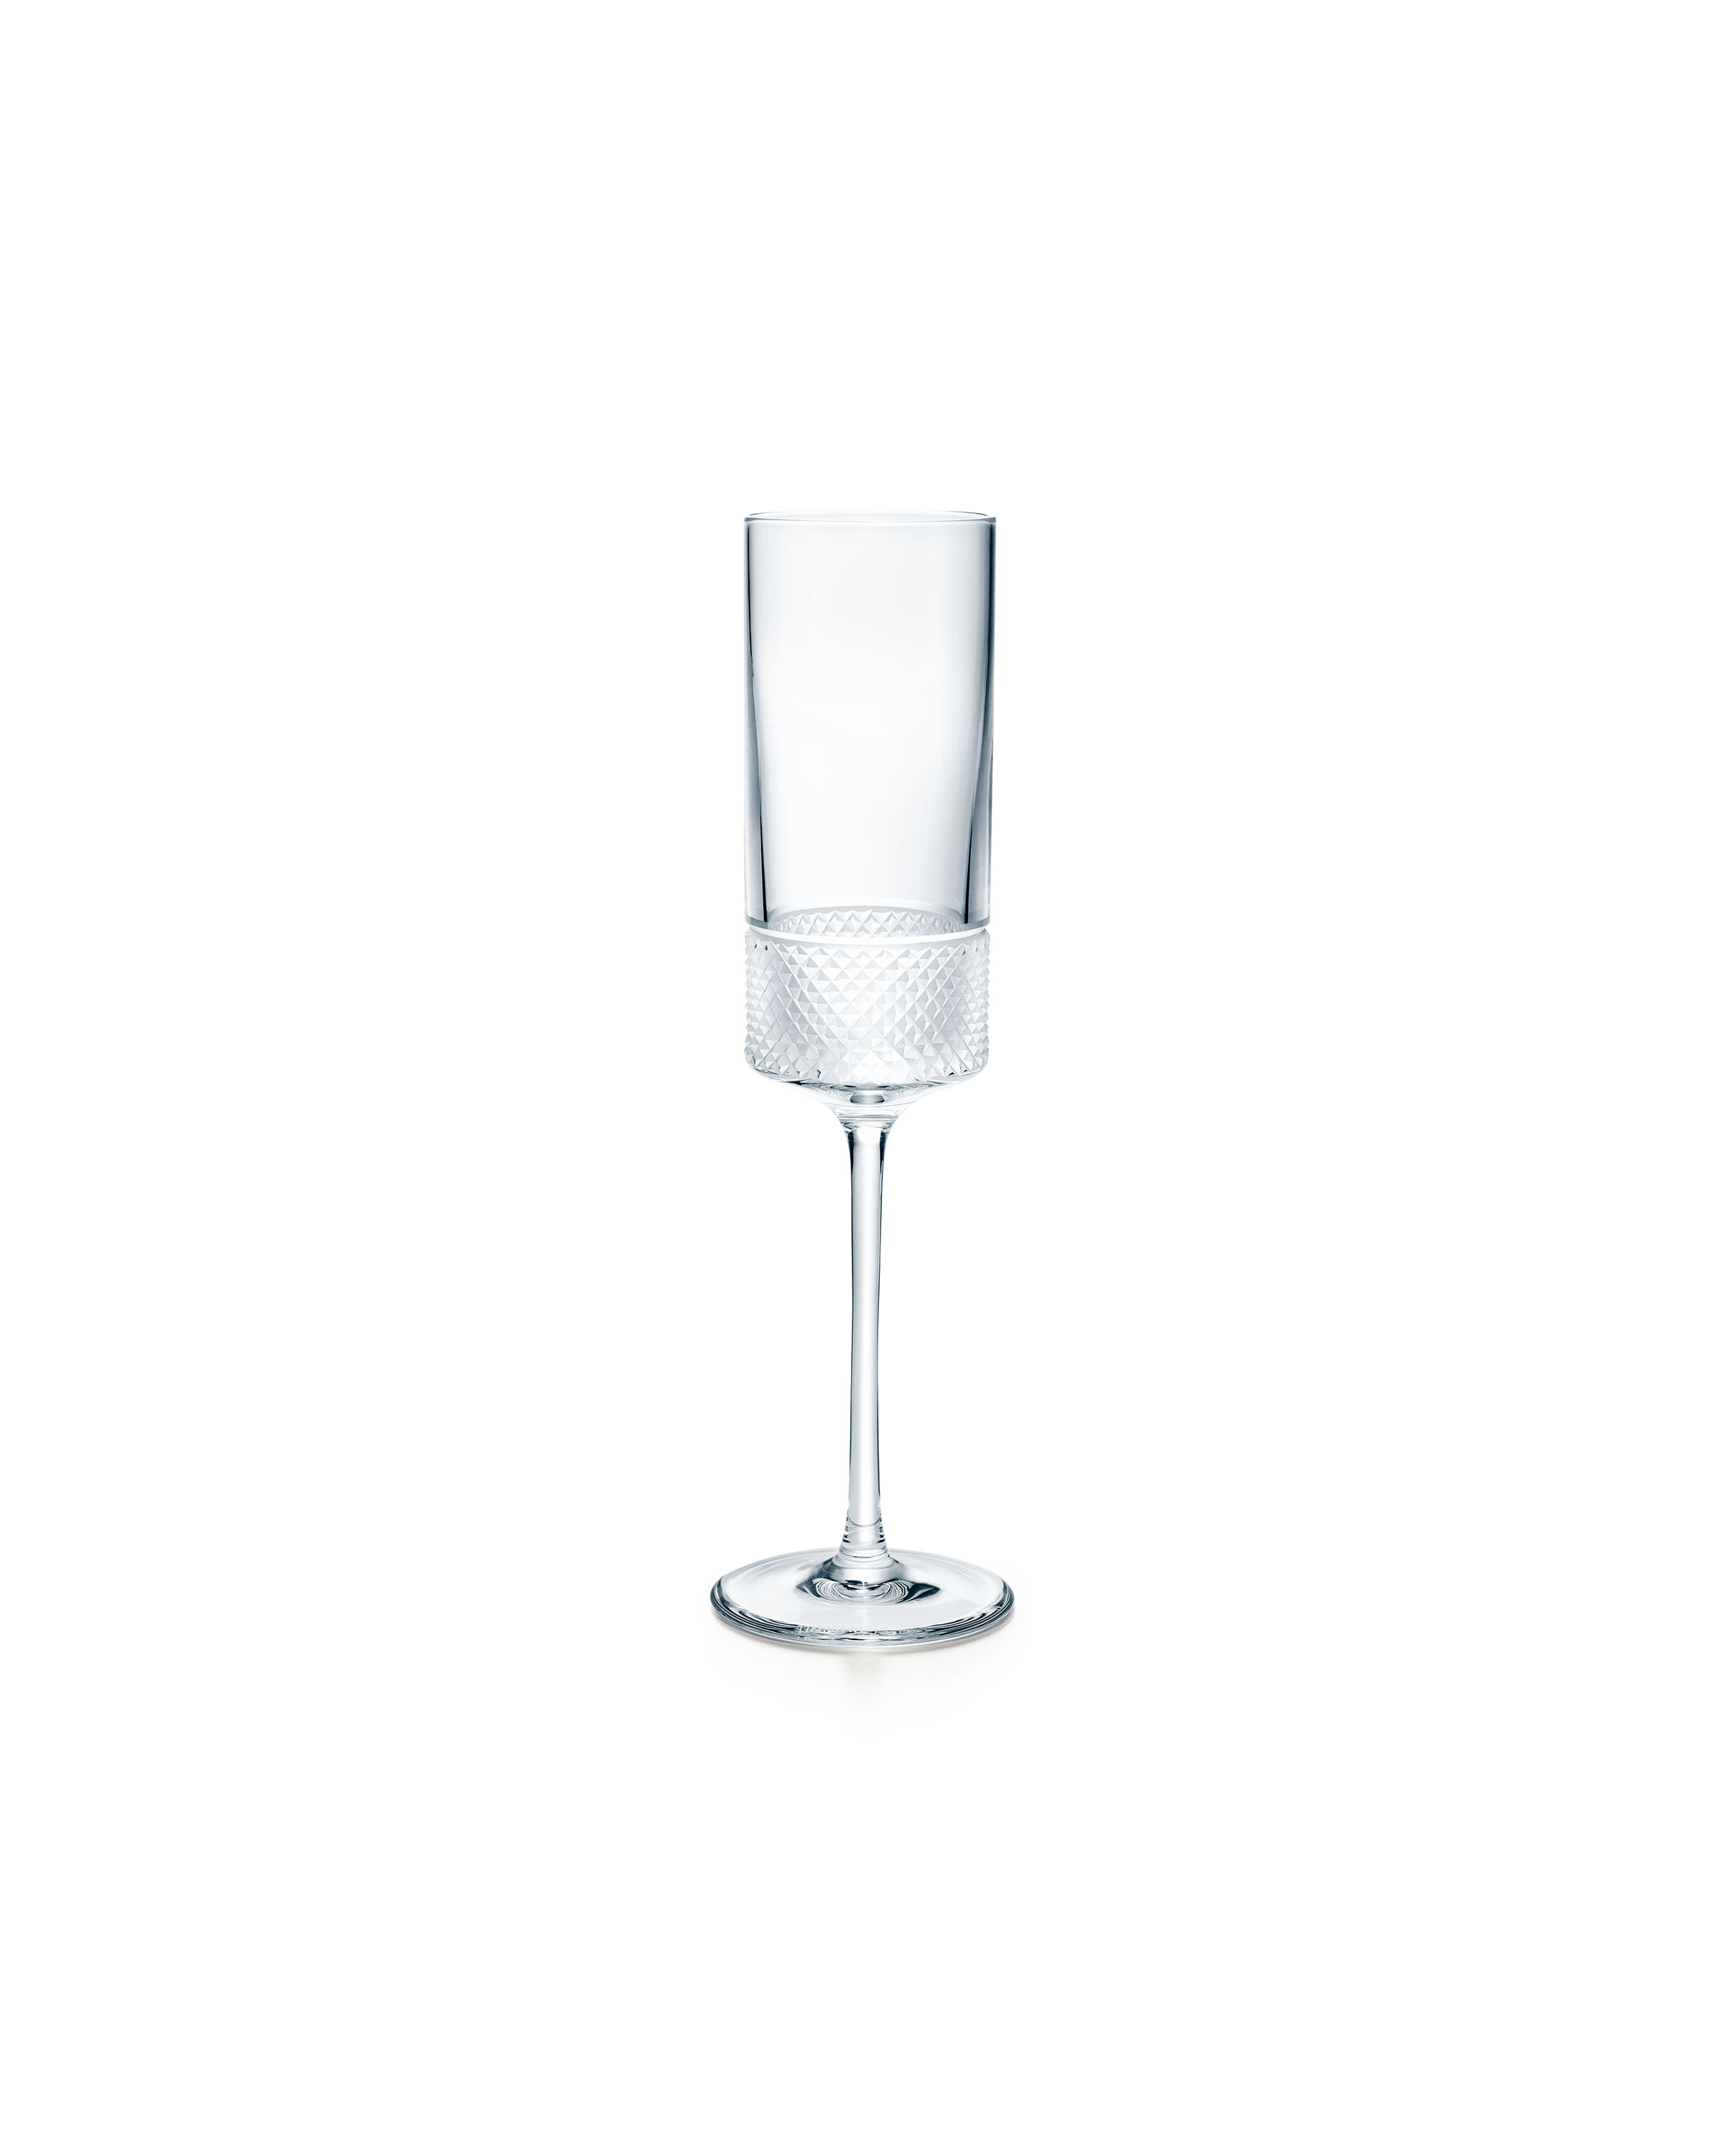 Tiffany & Co. Diamond Point champagne flute in crystal glass, $65.00. (Photo Credit: Tiffany & Co.)